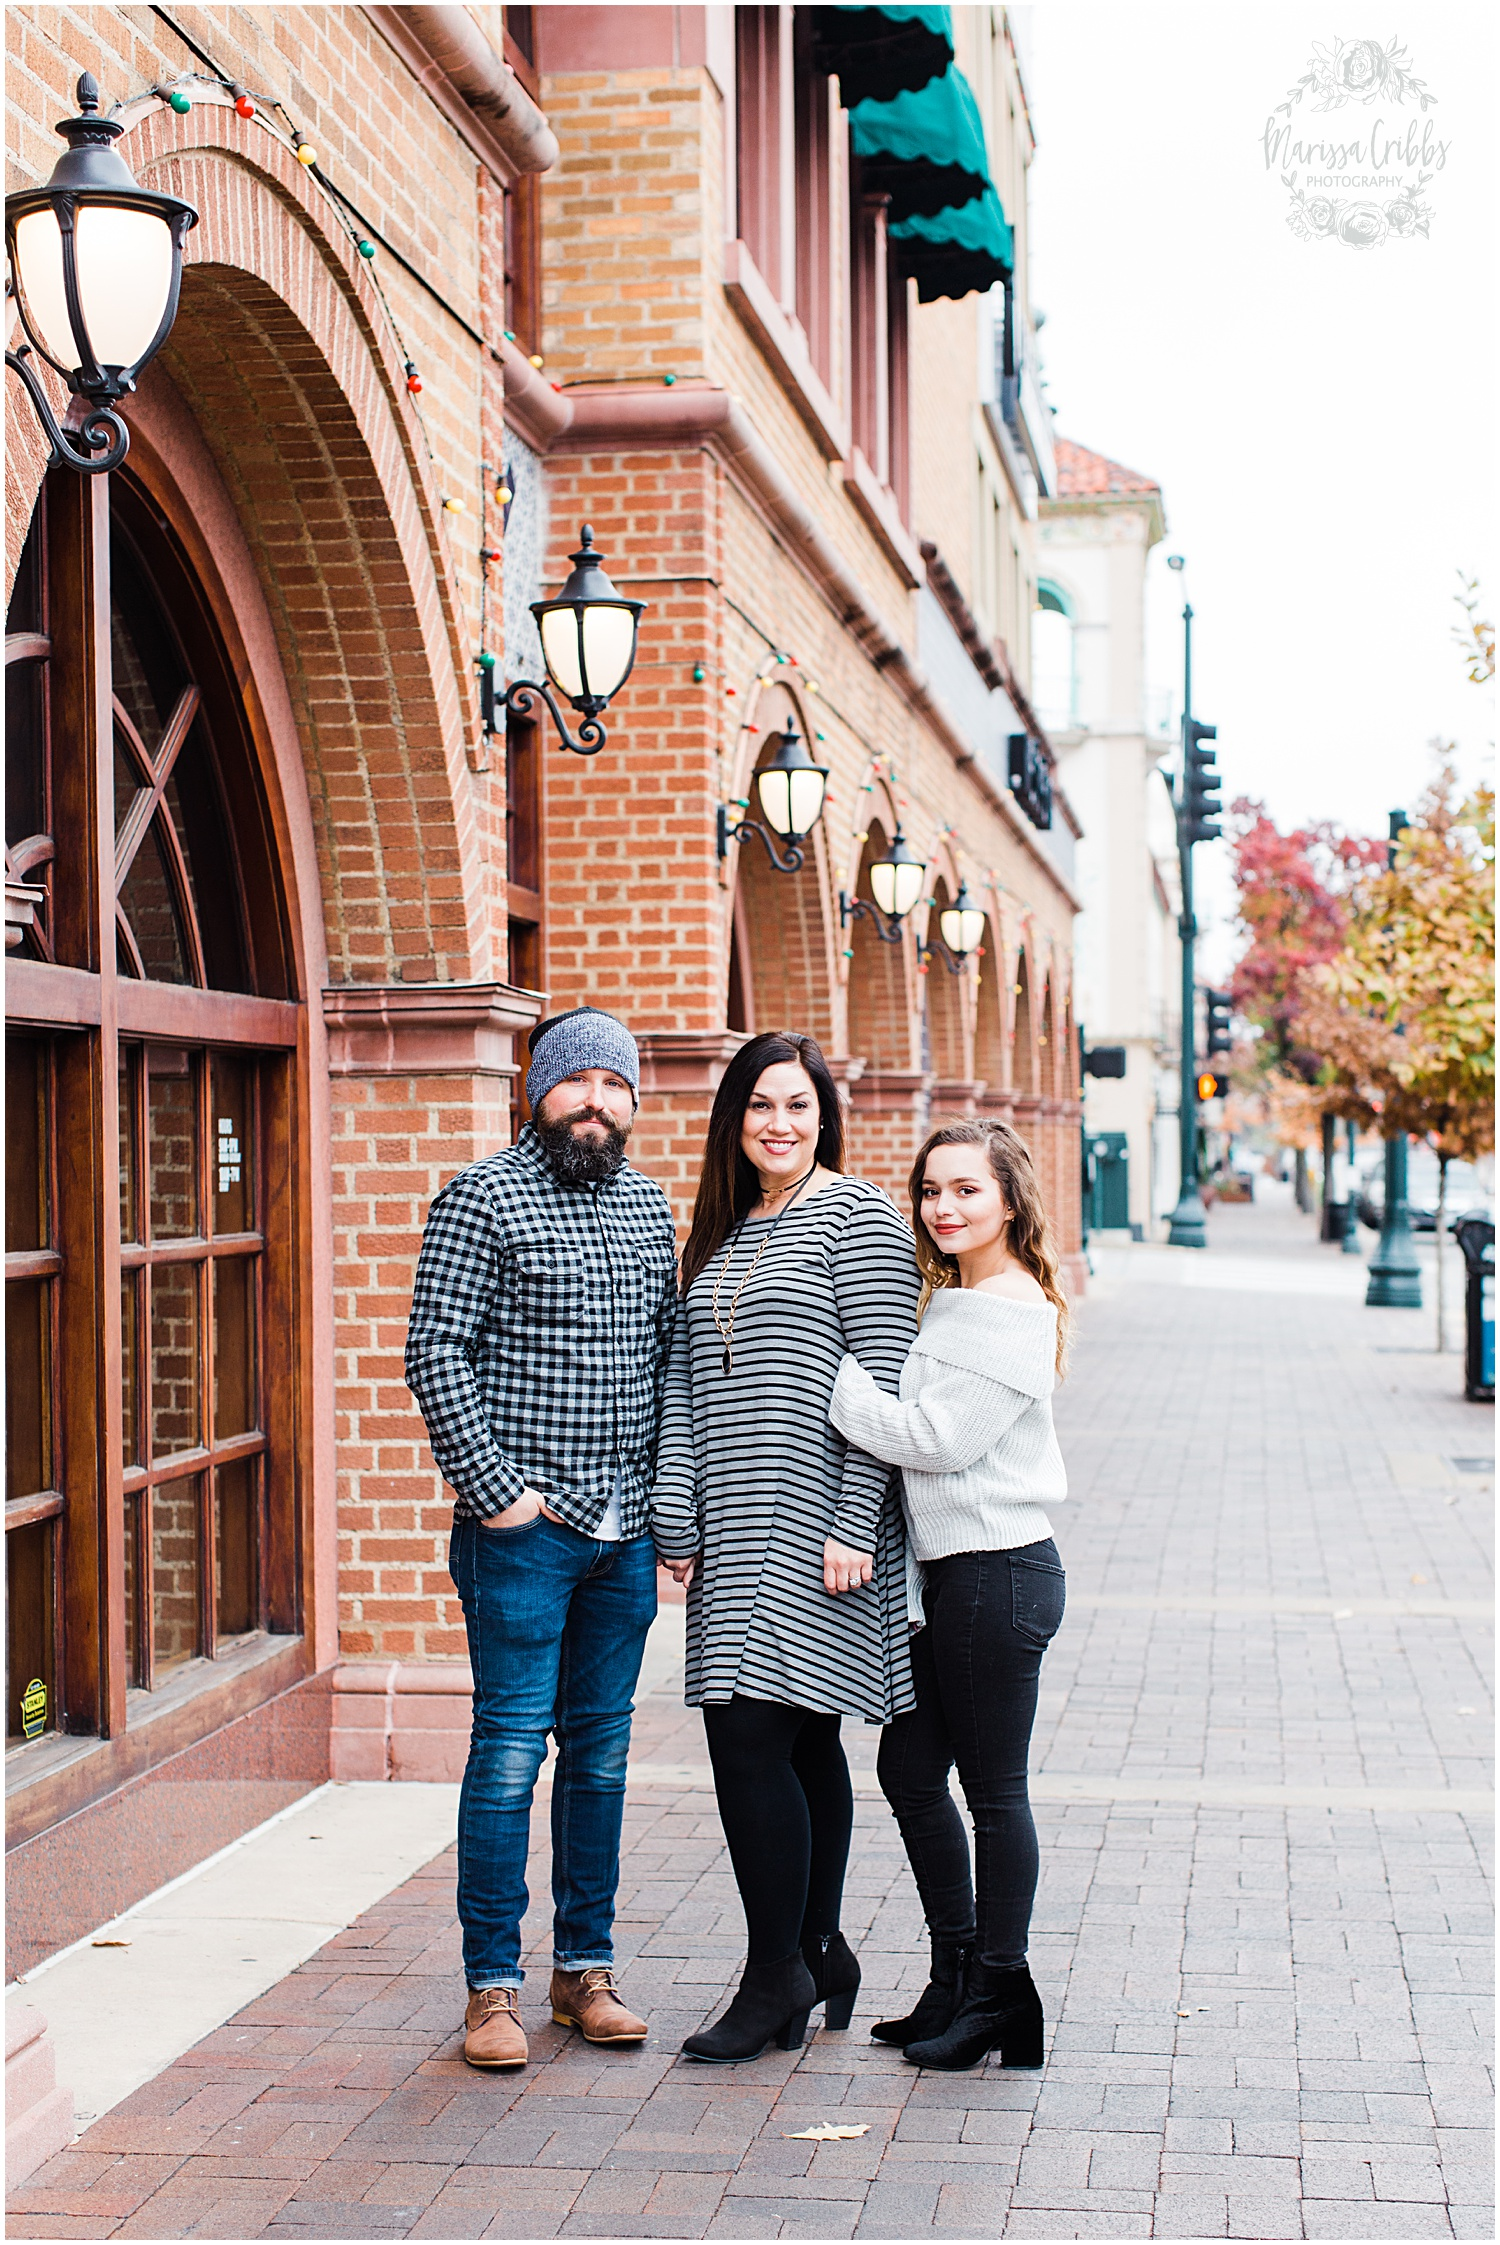 KC PLAZA FAMILY PHOTOGRAPHY | MARISSA CRIBBS PHOTOGRAPHY_4001.jpg